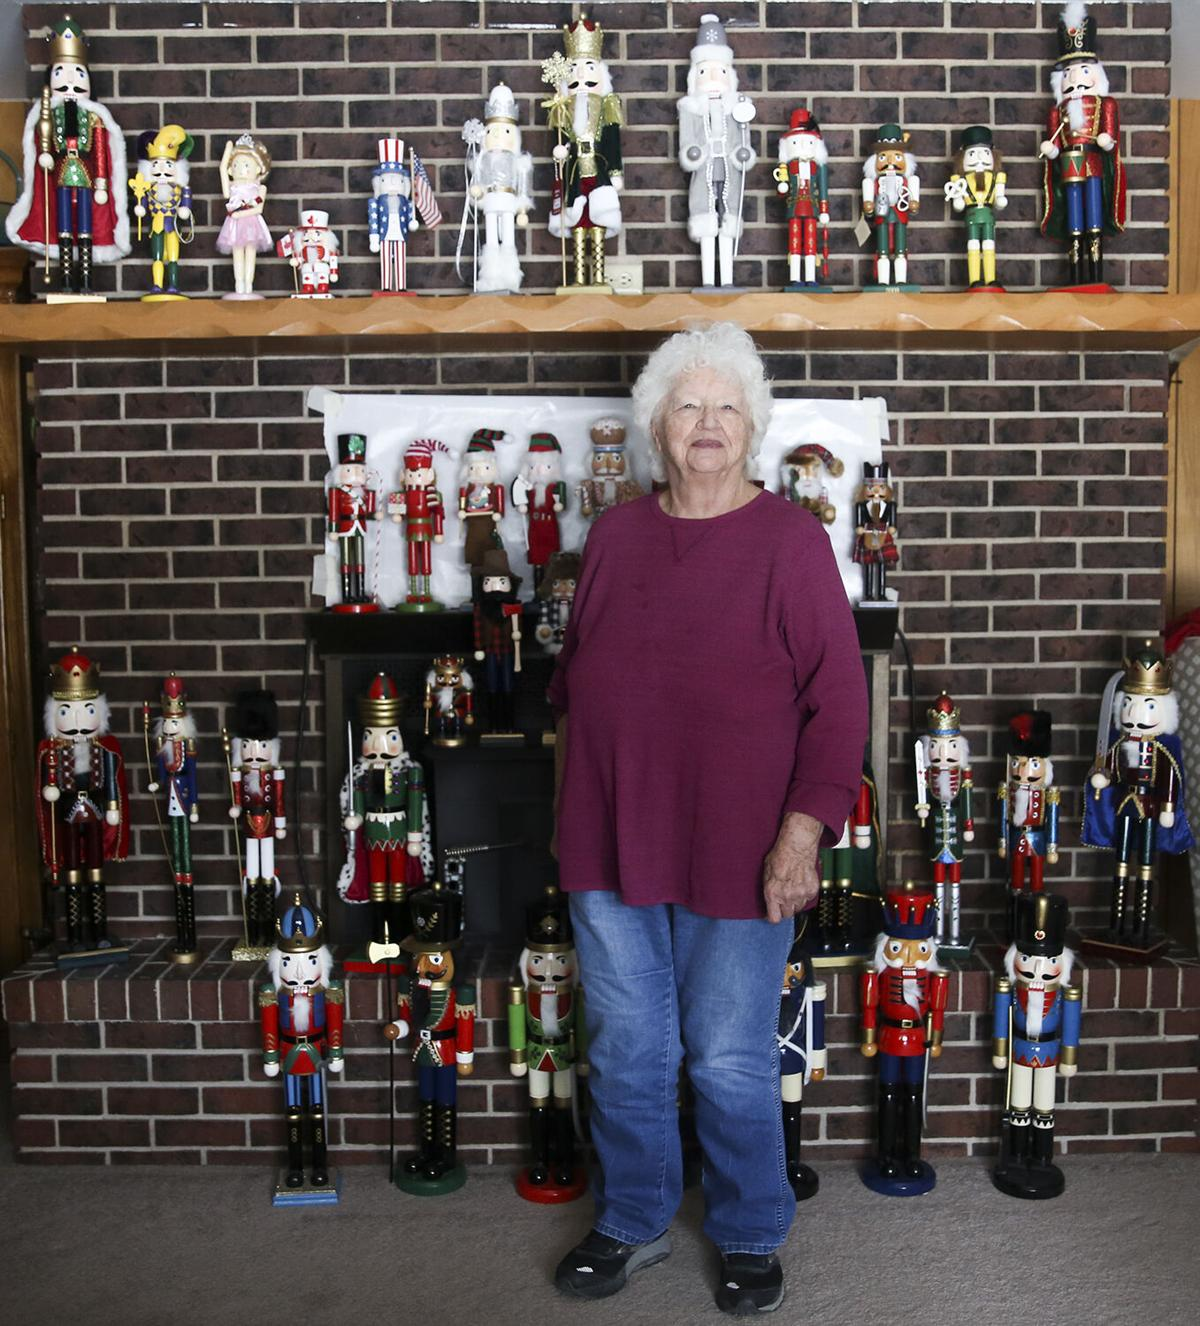 June Taylor, 89 and a half, has about 110 nutcrackers out